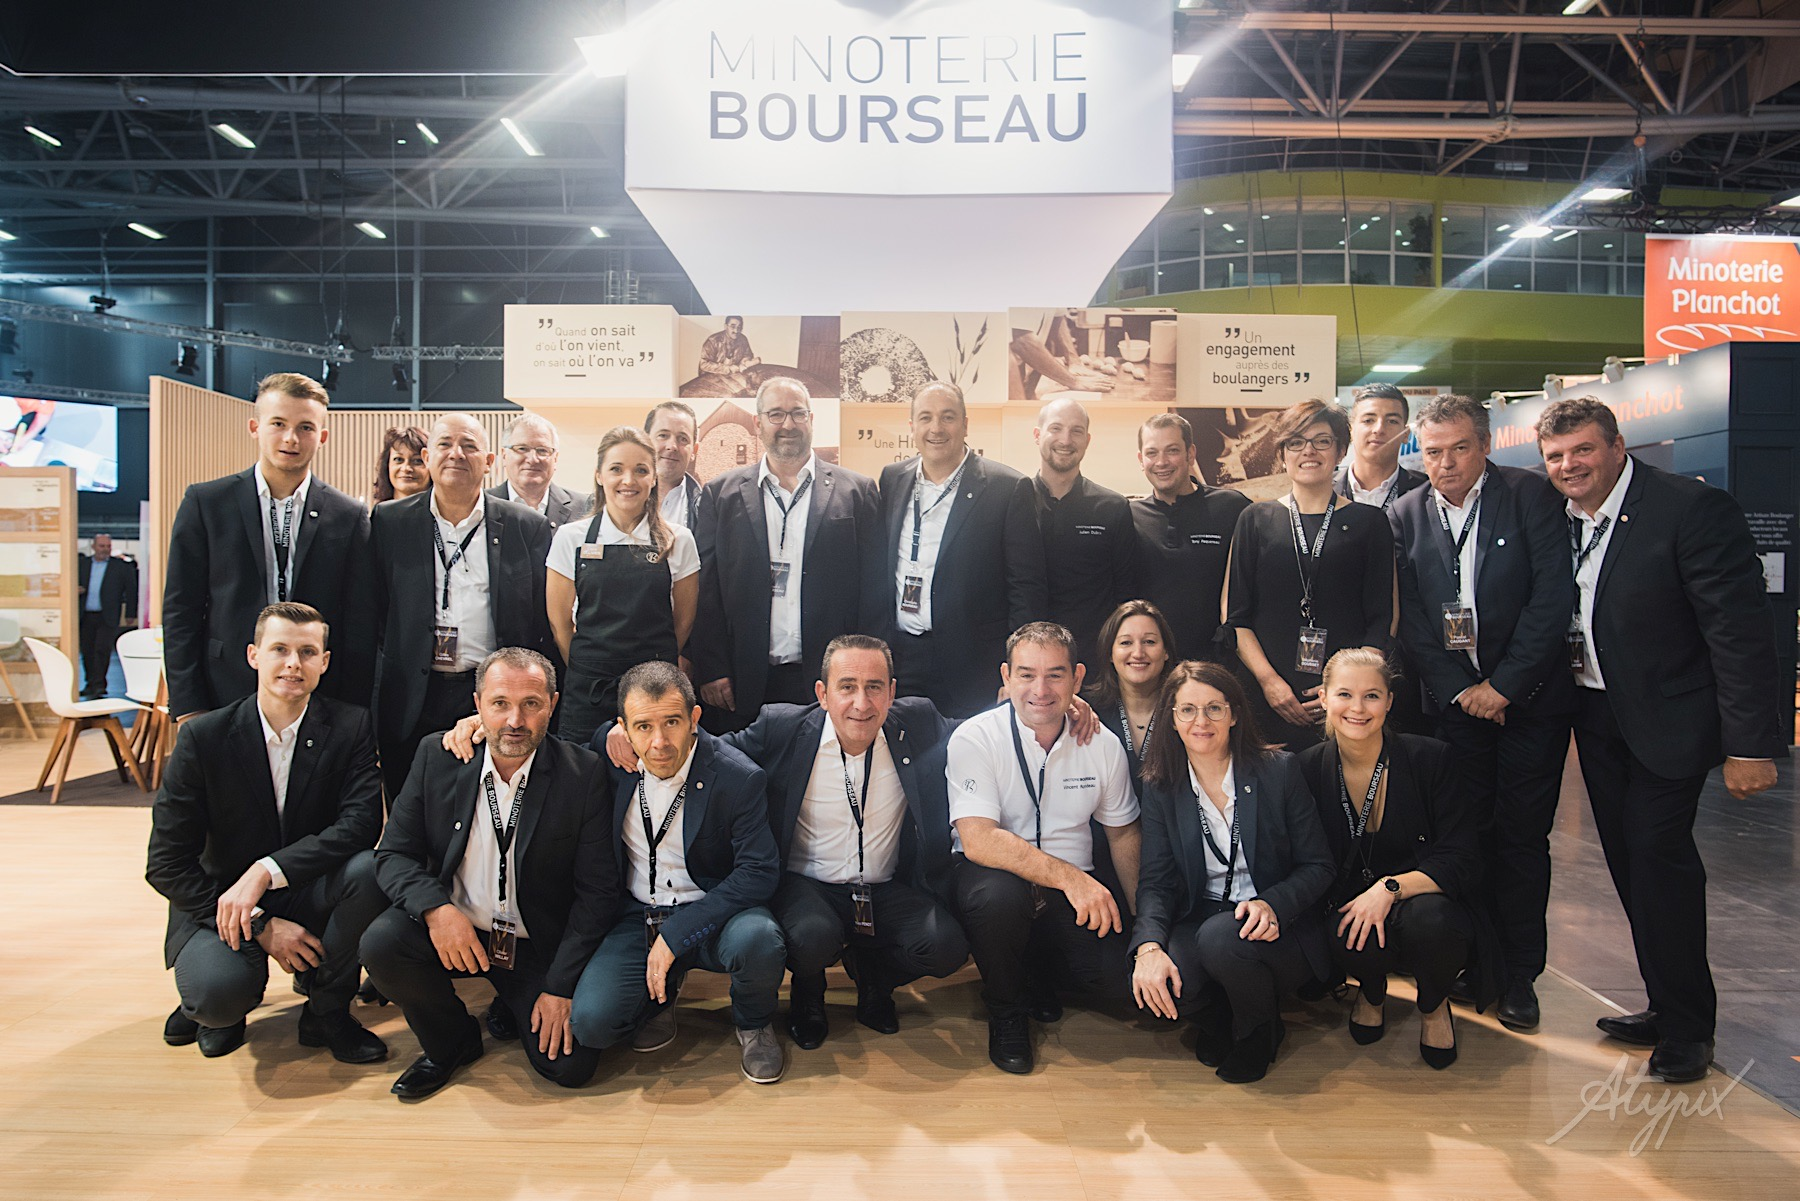 salon minoterie bourseau